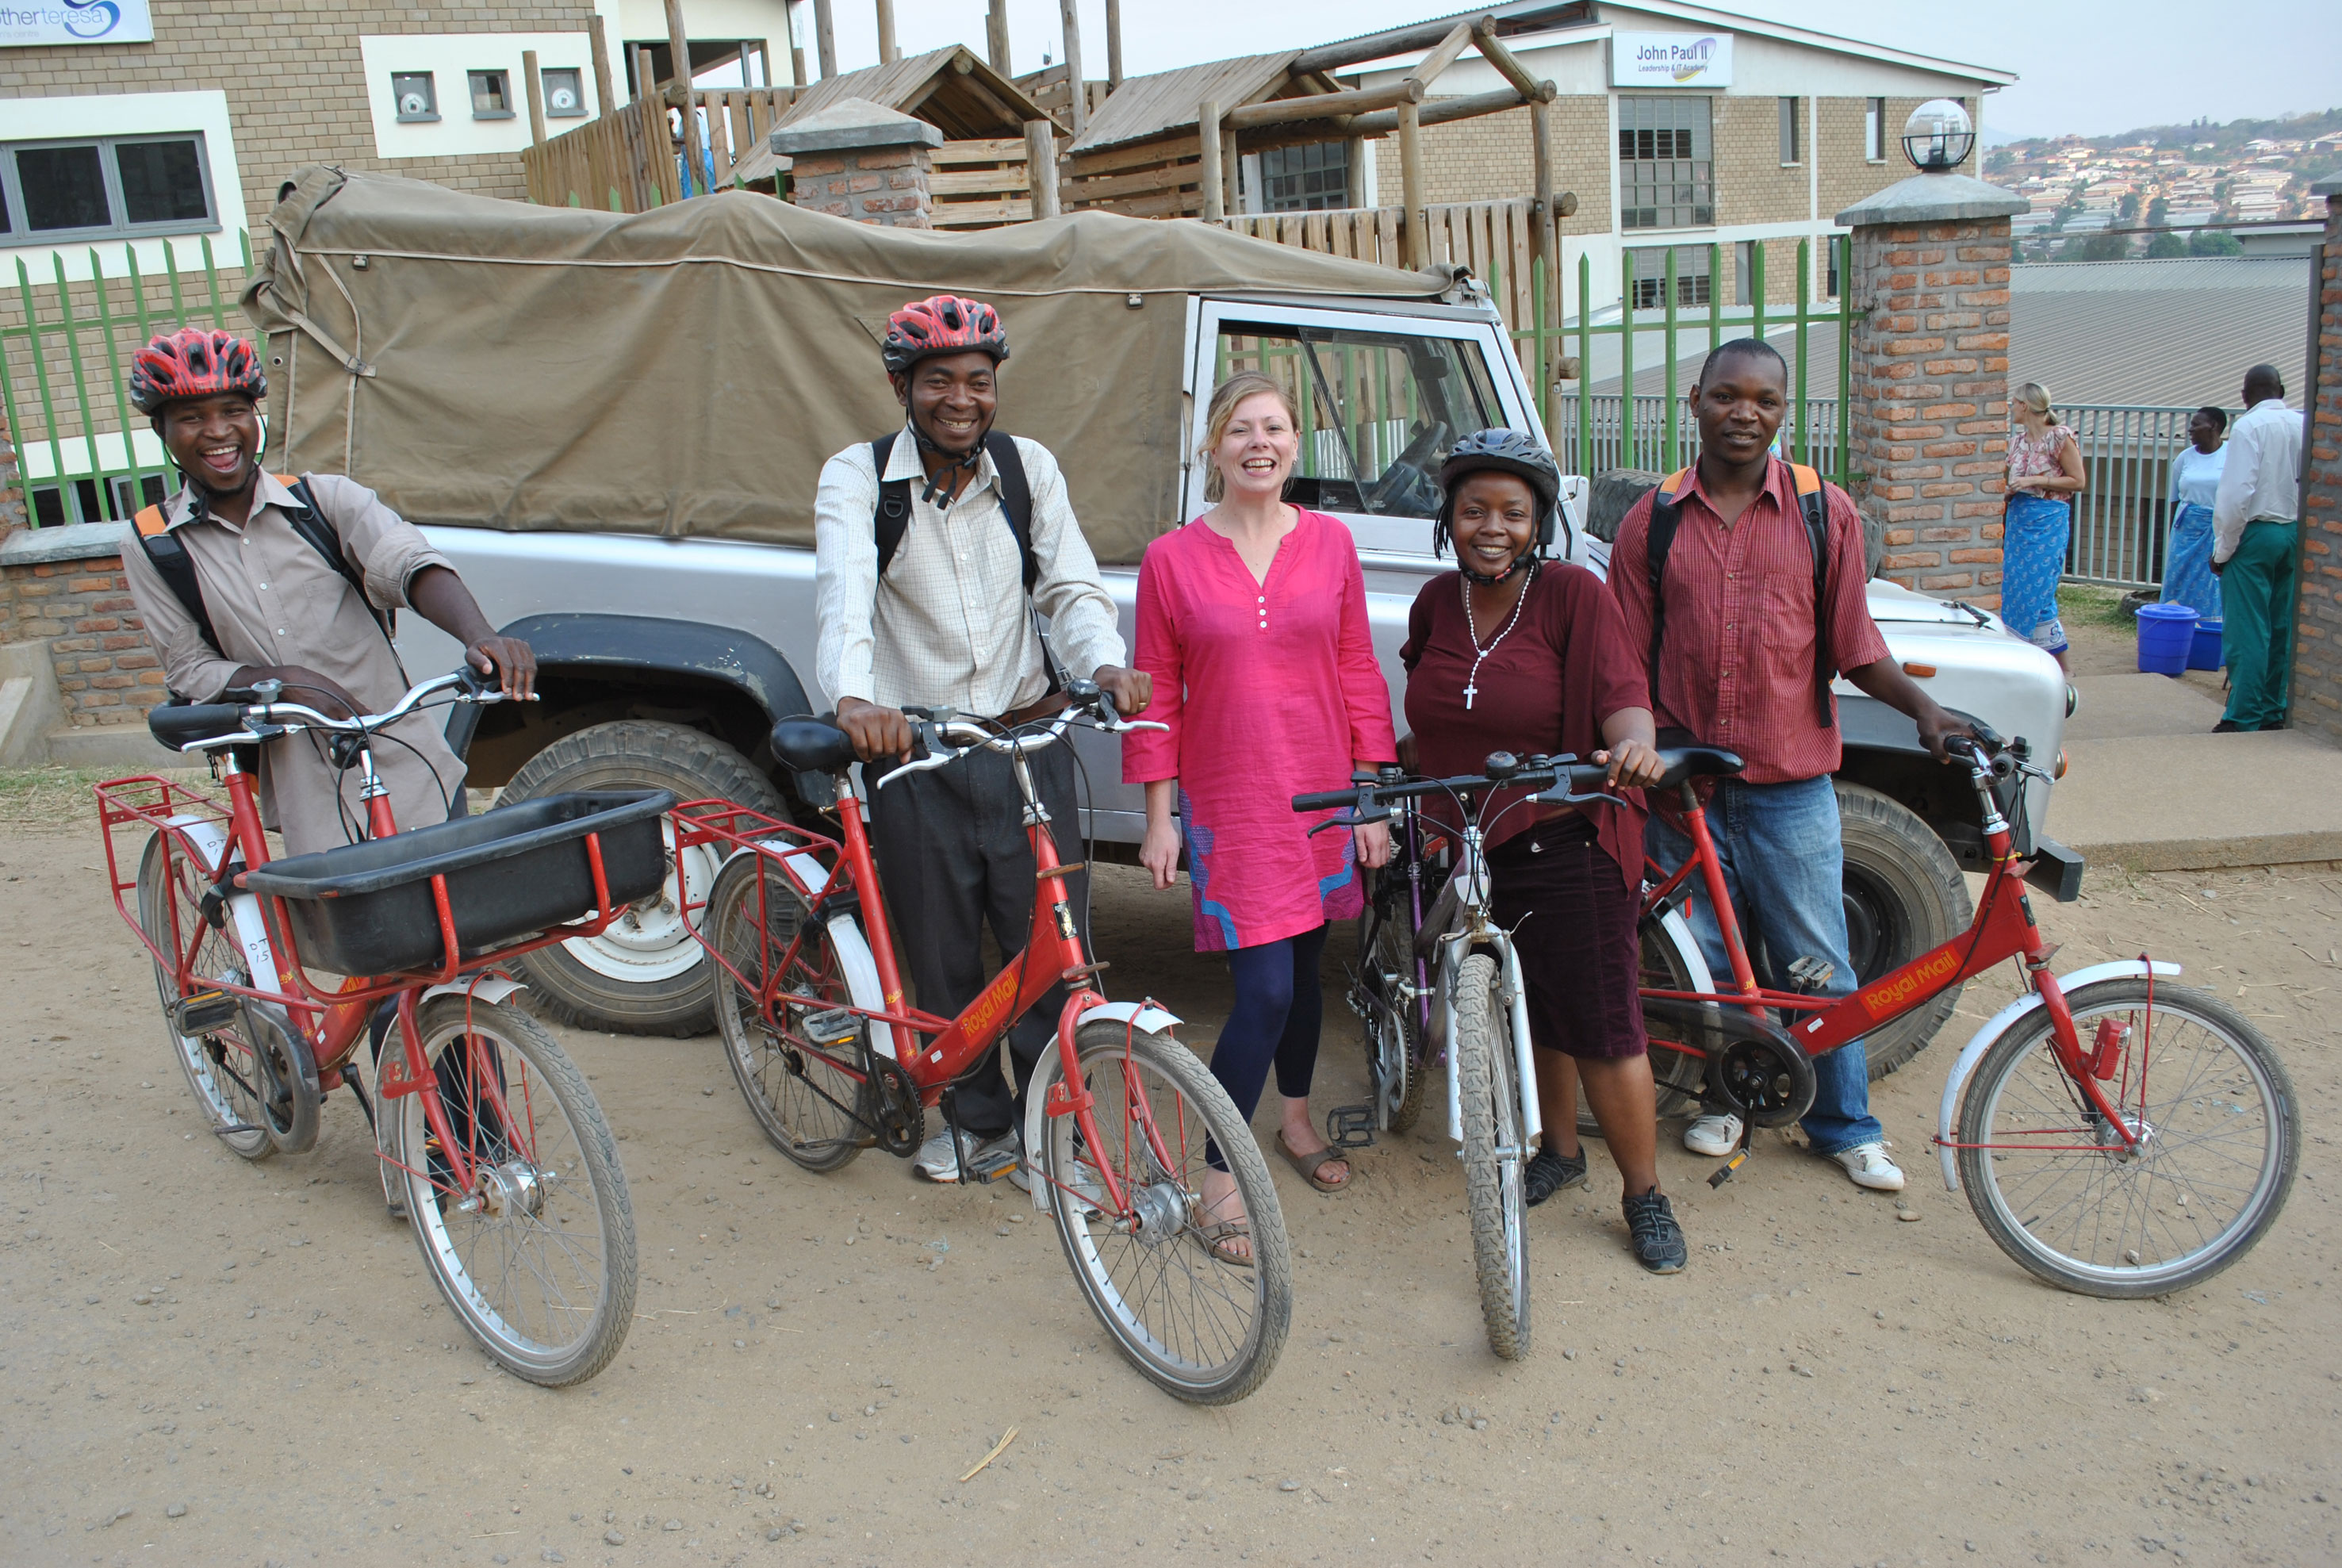 The Family Support team, visit local families on Royal Mail bikes